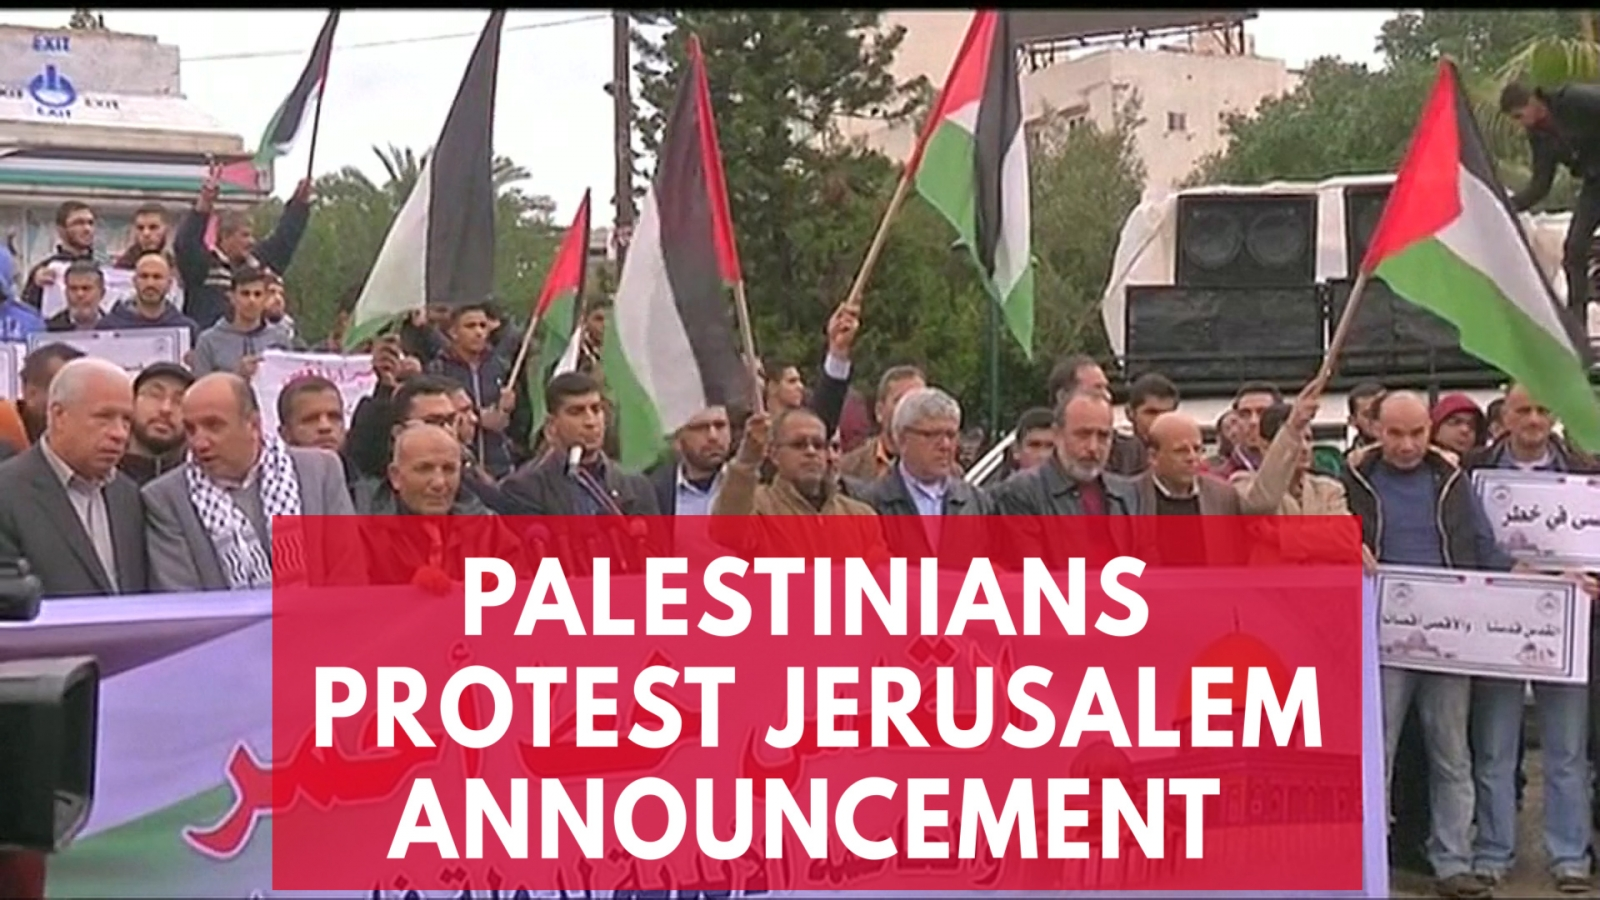 Palestinians burn US and Israeli flags after Jerusalem announcement